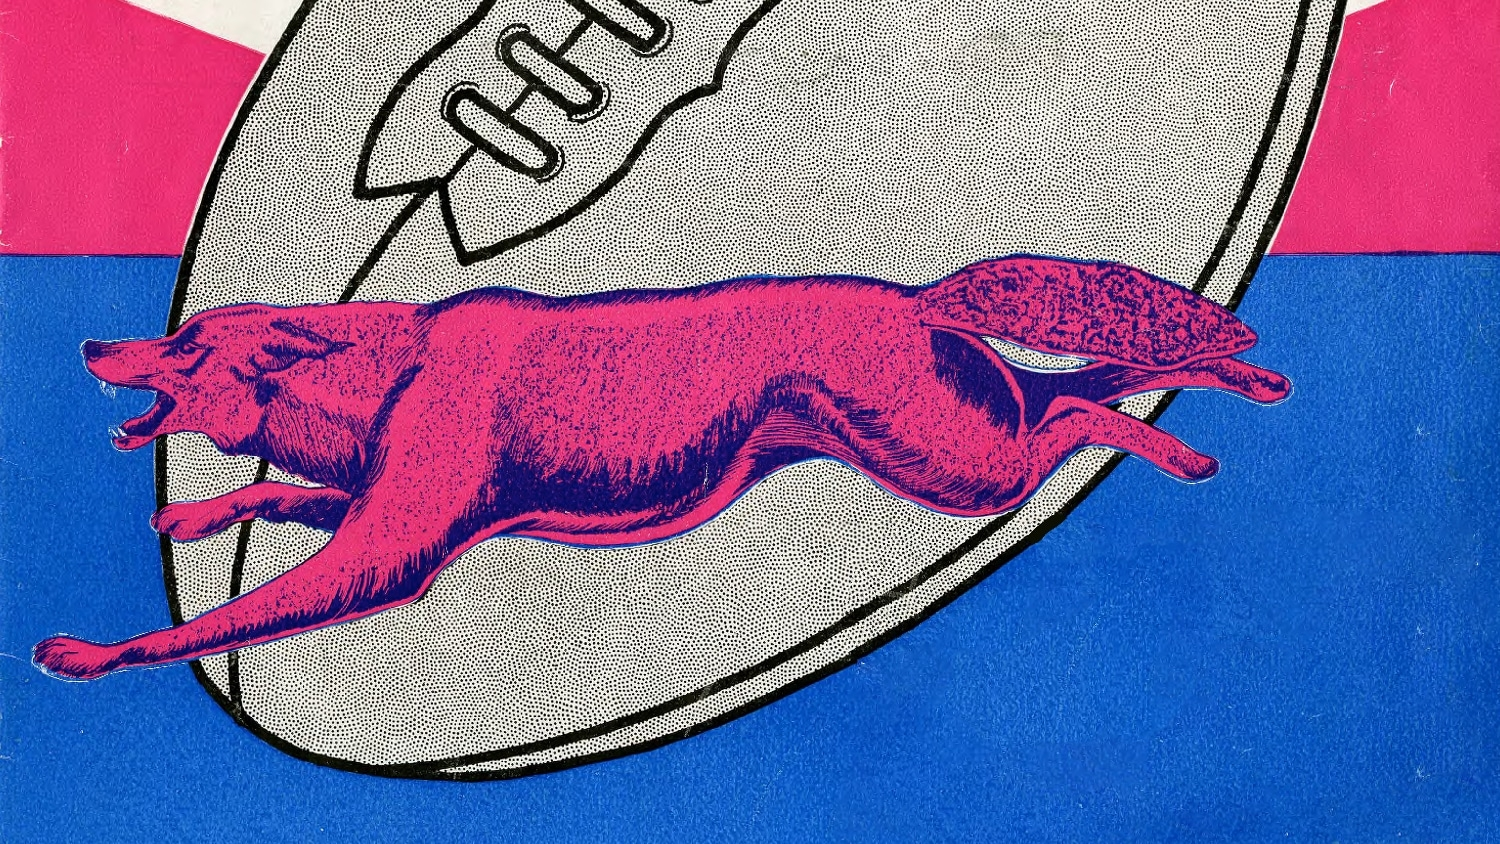 A pink and blue wolf illustration from an NC State 1931 football program.